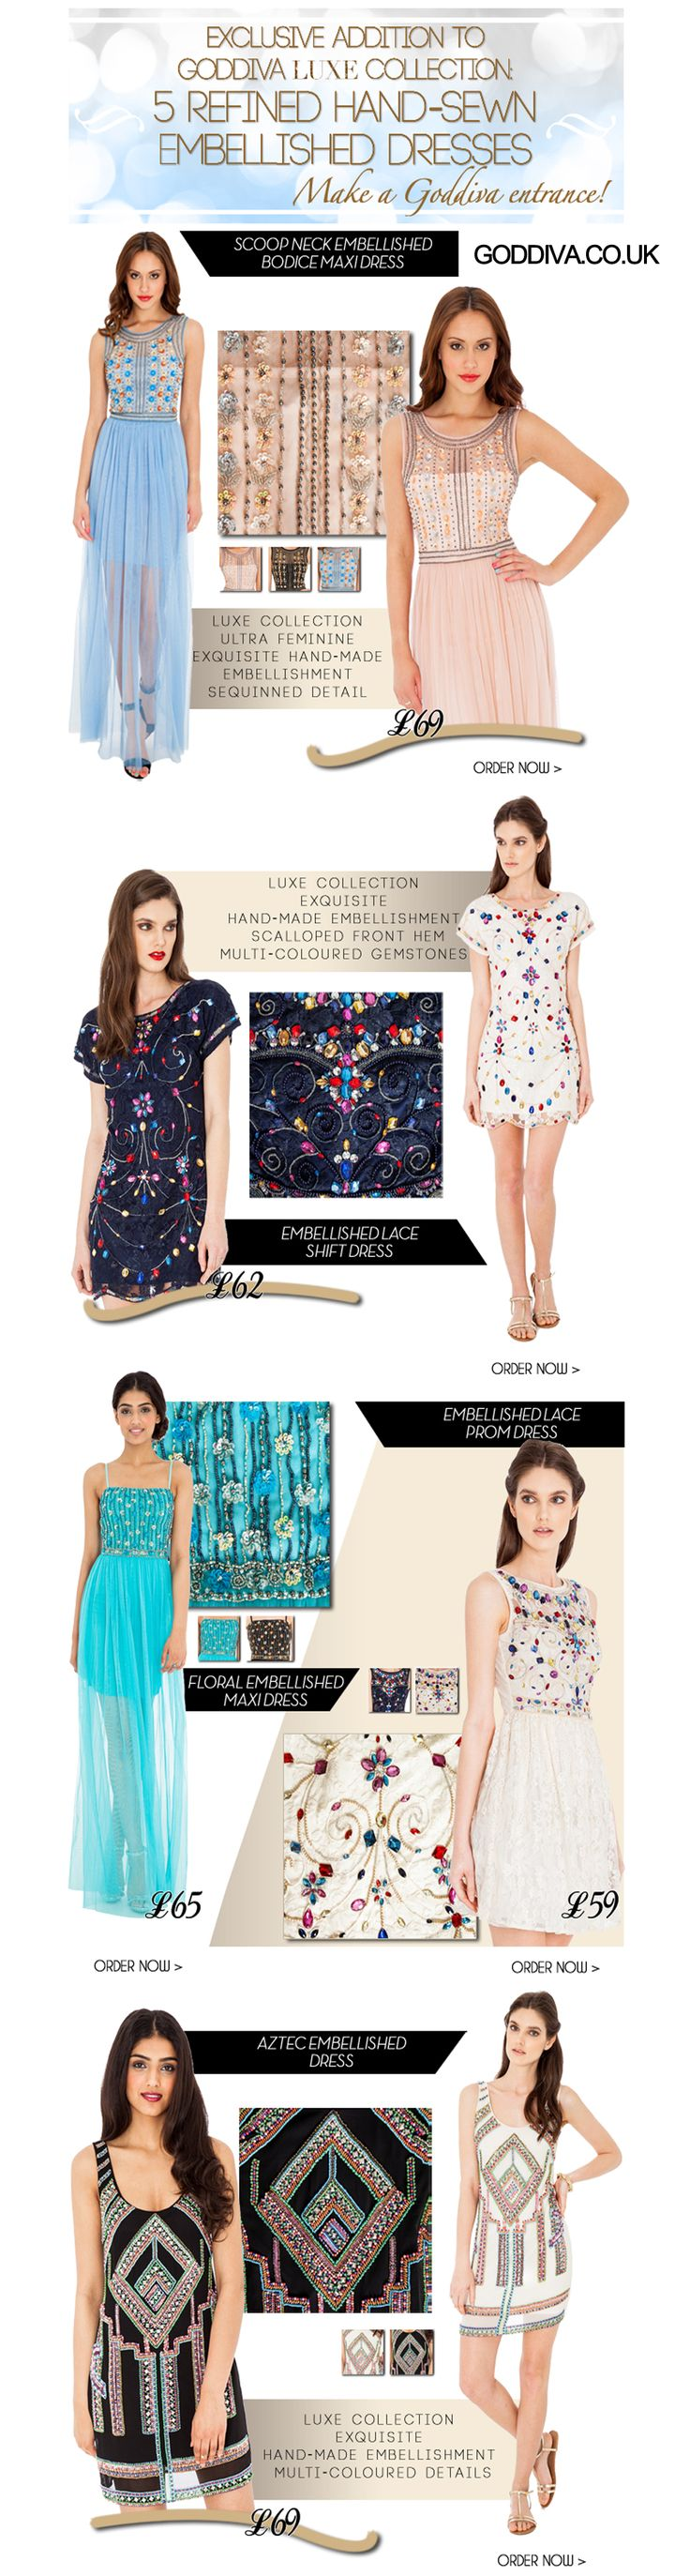 Check out our new embellished dresses and also enter our amazing competition to win £100 to spend at Goddiva